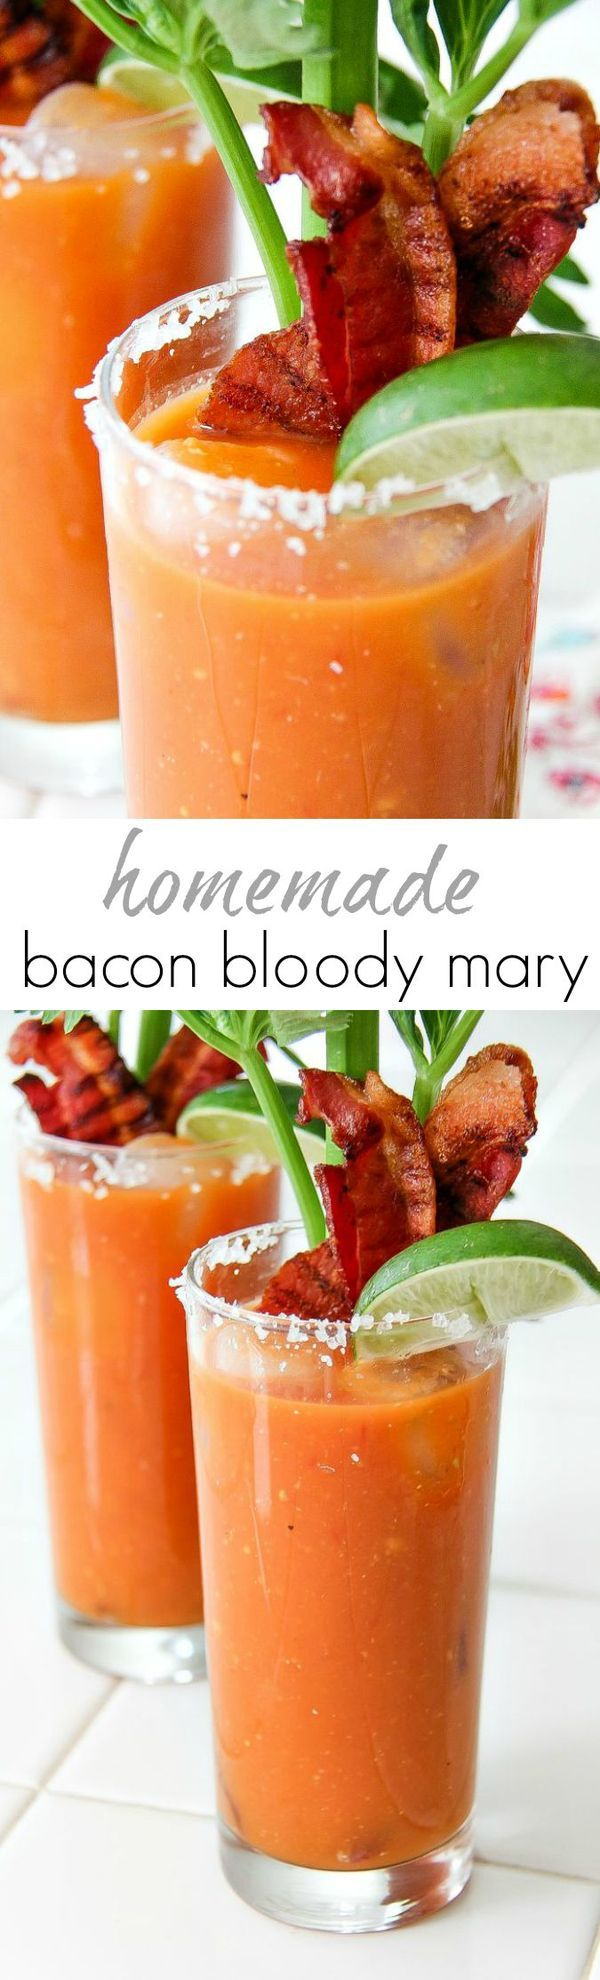 A homemade, from scratch, Bacon Bloody Mary cocktail that is the perfect beverage for summer brunch #donthesitaste #sponsored